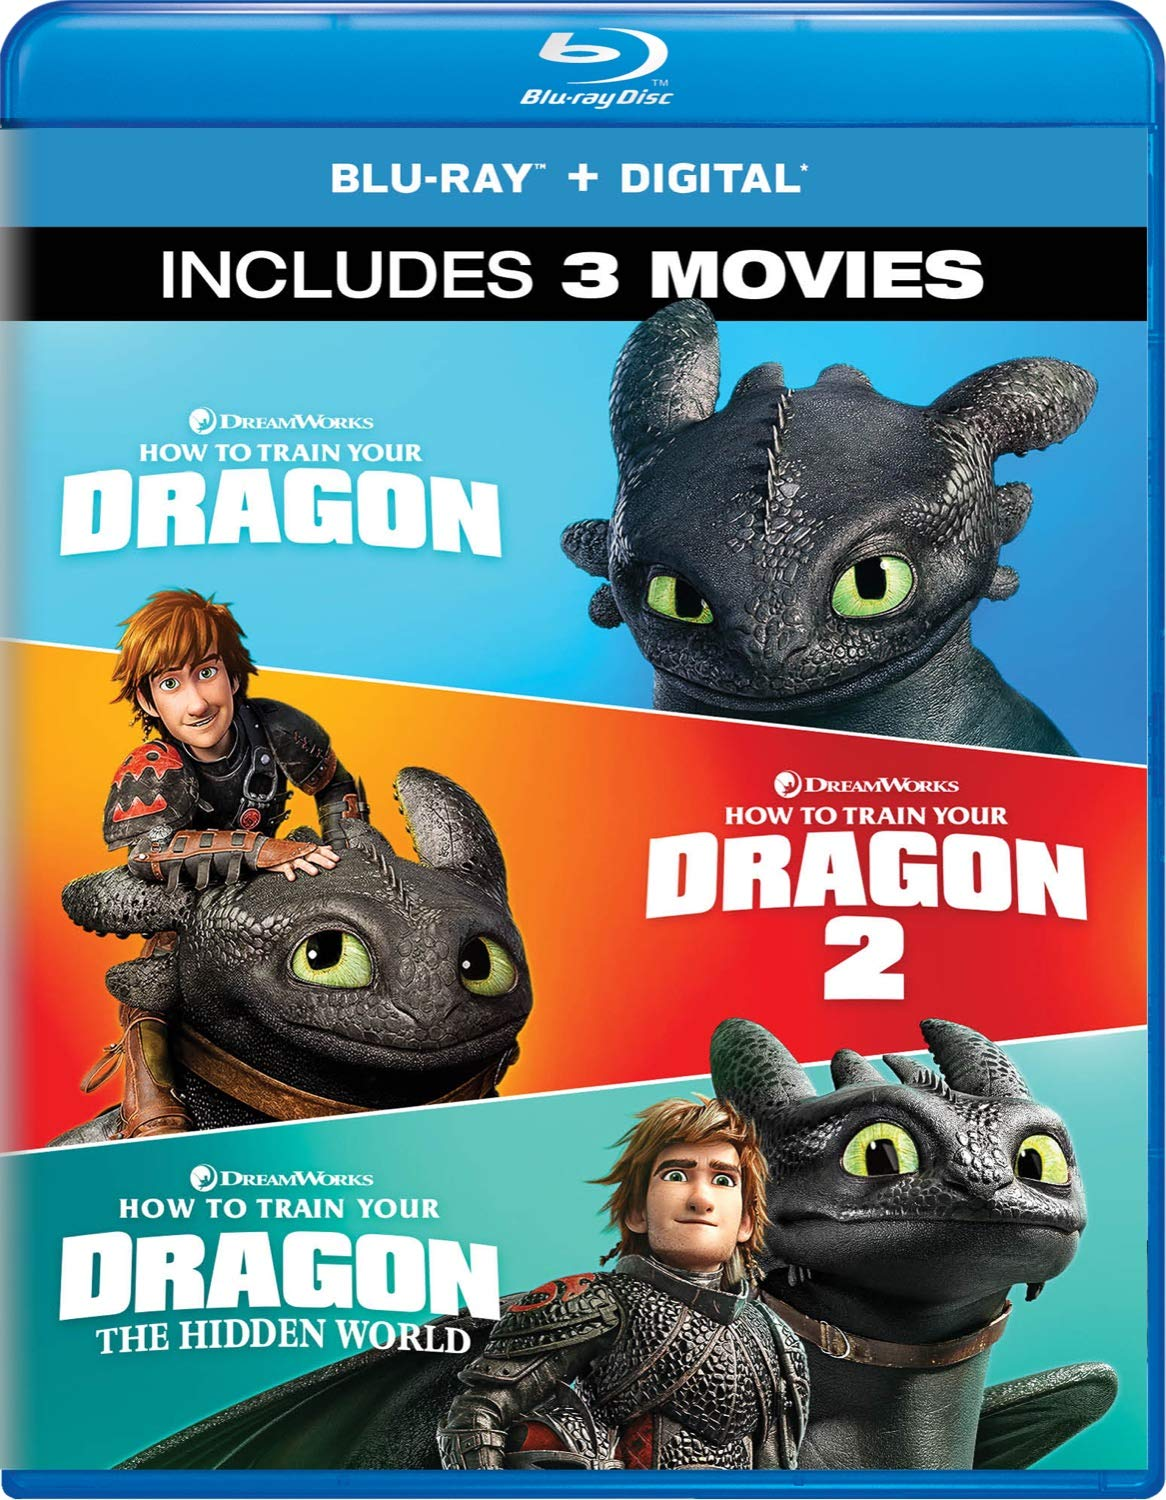 How to train your dragon the hidden world cast